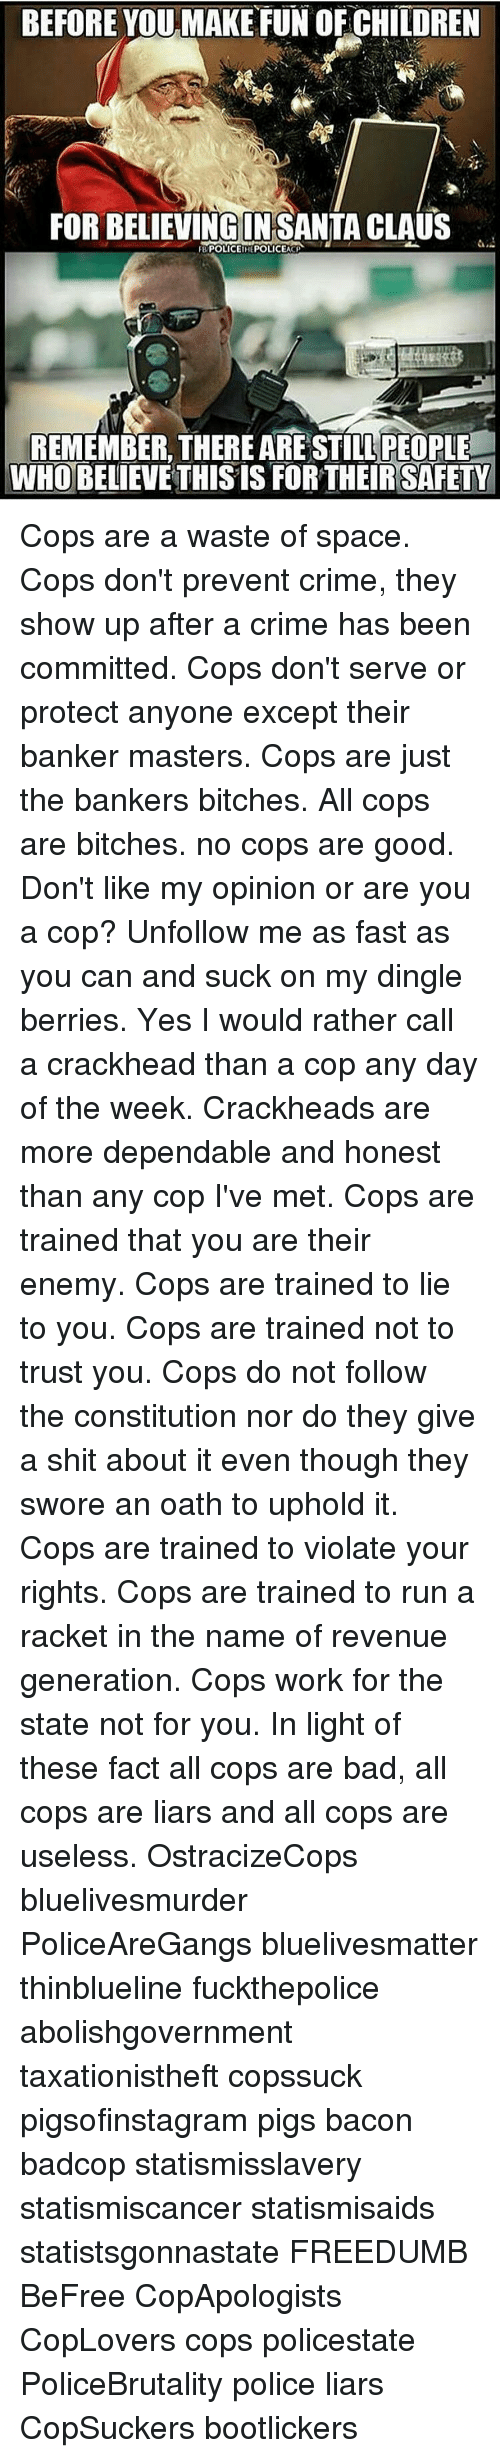 Dingle Berries: BEFORE YOU MAKE FUN OFCHILDREN  FOR BELIEVING IN SANTA CLAUS  REMEMBER THERE ARE STILL PEOPLE  WHO BELIEVETHIS IS FOR THEIR SAFETY Cops are a waste of space. Cops don't prevent crime, they show up after a crime has been committed. Cops don't serve or protect anyone except their banker masters. Cops are just the bankers bitches. All cops are bitches. no cops are good. Don't like my opinion or are you a cop? Unfollow me as fast as you can and suck on my dingle berries. Yes I would rather call a crackhead than a cop any day of the week. Crackheads are more dependable and honest than any cop I've met. Cops are trained that you are their enemy. Cops are trained to lie to you. Cops are trained not to trust you. Cops do not follow the constitution nor do they give a shit about it even though they swore an oath to uphold it. Cops are trained to violate your rights. Cops are trained to run a racket in the name of revenue generation. Cops work for the state not for you. In light of these fact all cops are bad, all cops are liars and all cops are useless. OstracizeCops bluelivesmurder PoliceAreGangs bluelivesmatter thinblueline fuckthepolice abolishgovernment taxationistheft copssuck pigsofinstagram pigs bacon badcop statismisslavery statismiscancer statismisaids statistsgonnastate FREEDUMB BeFree CopApologists CopLovers cops policestate PoliceBrutality police liars CopSuckers bootlickers